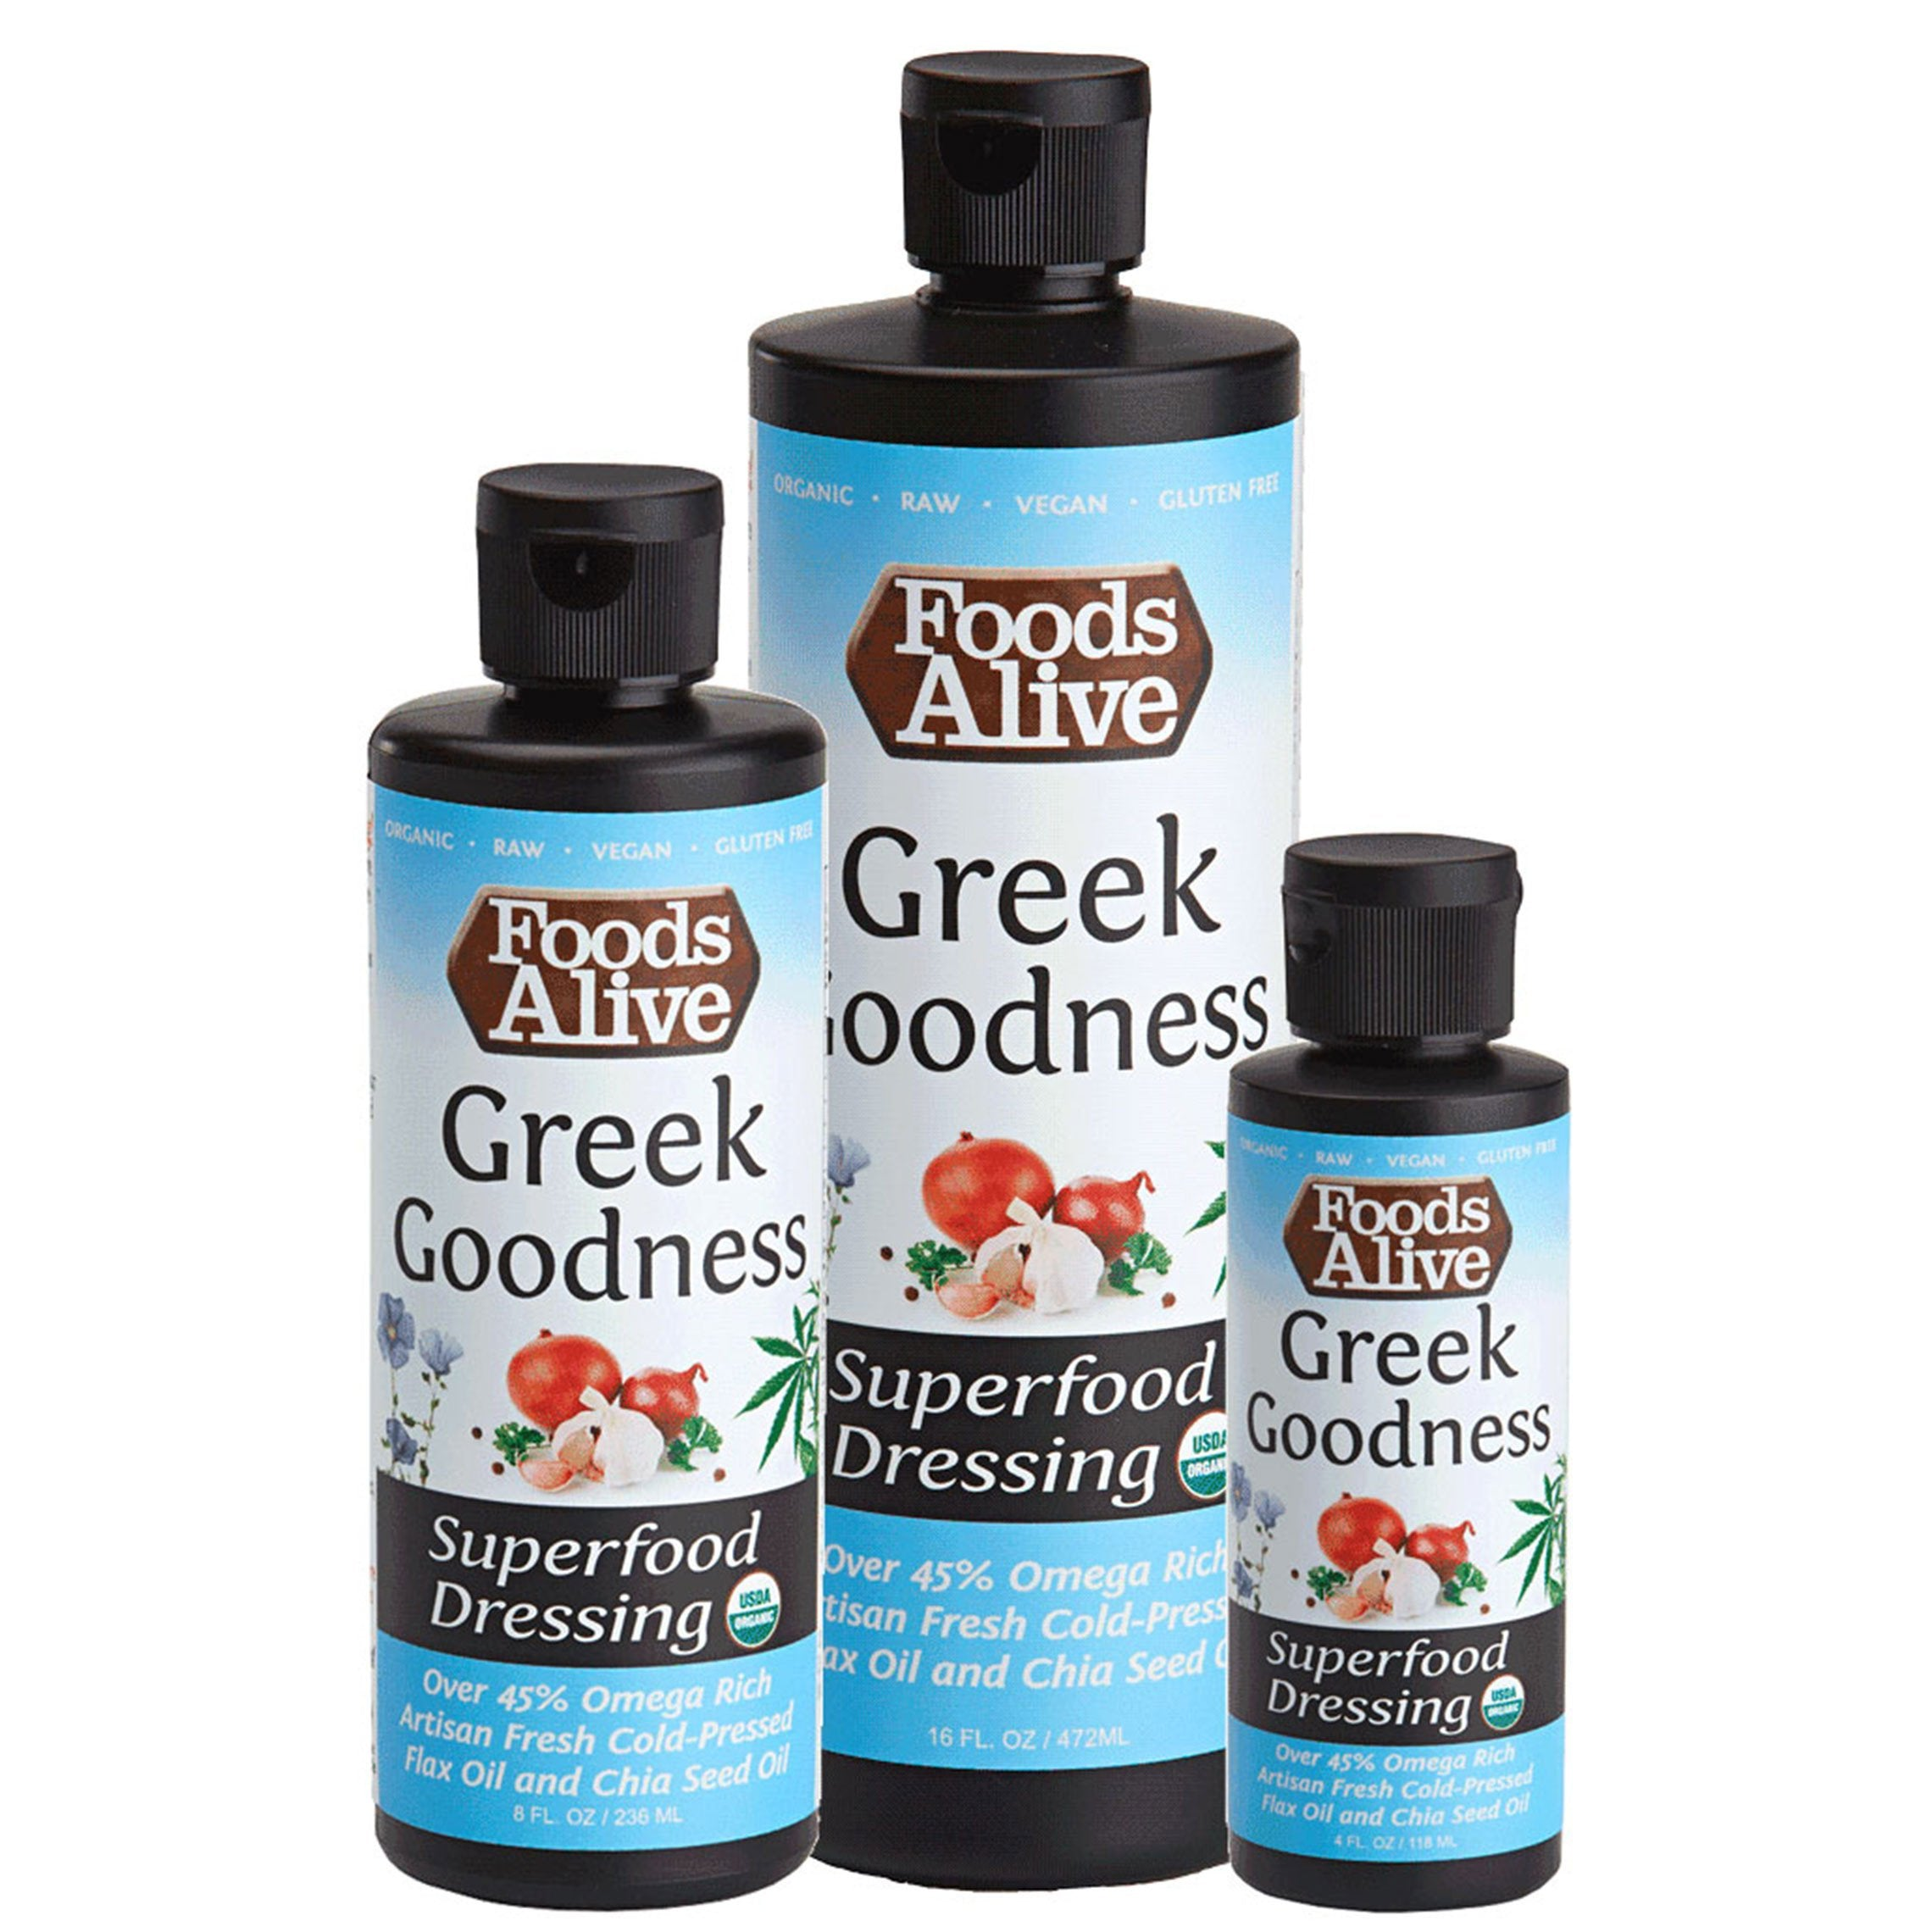 Foods Alive - Greek Goodness Superfood Dressing (8 oz)